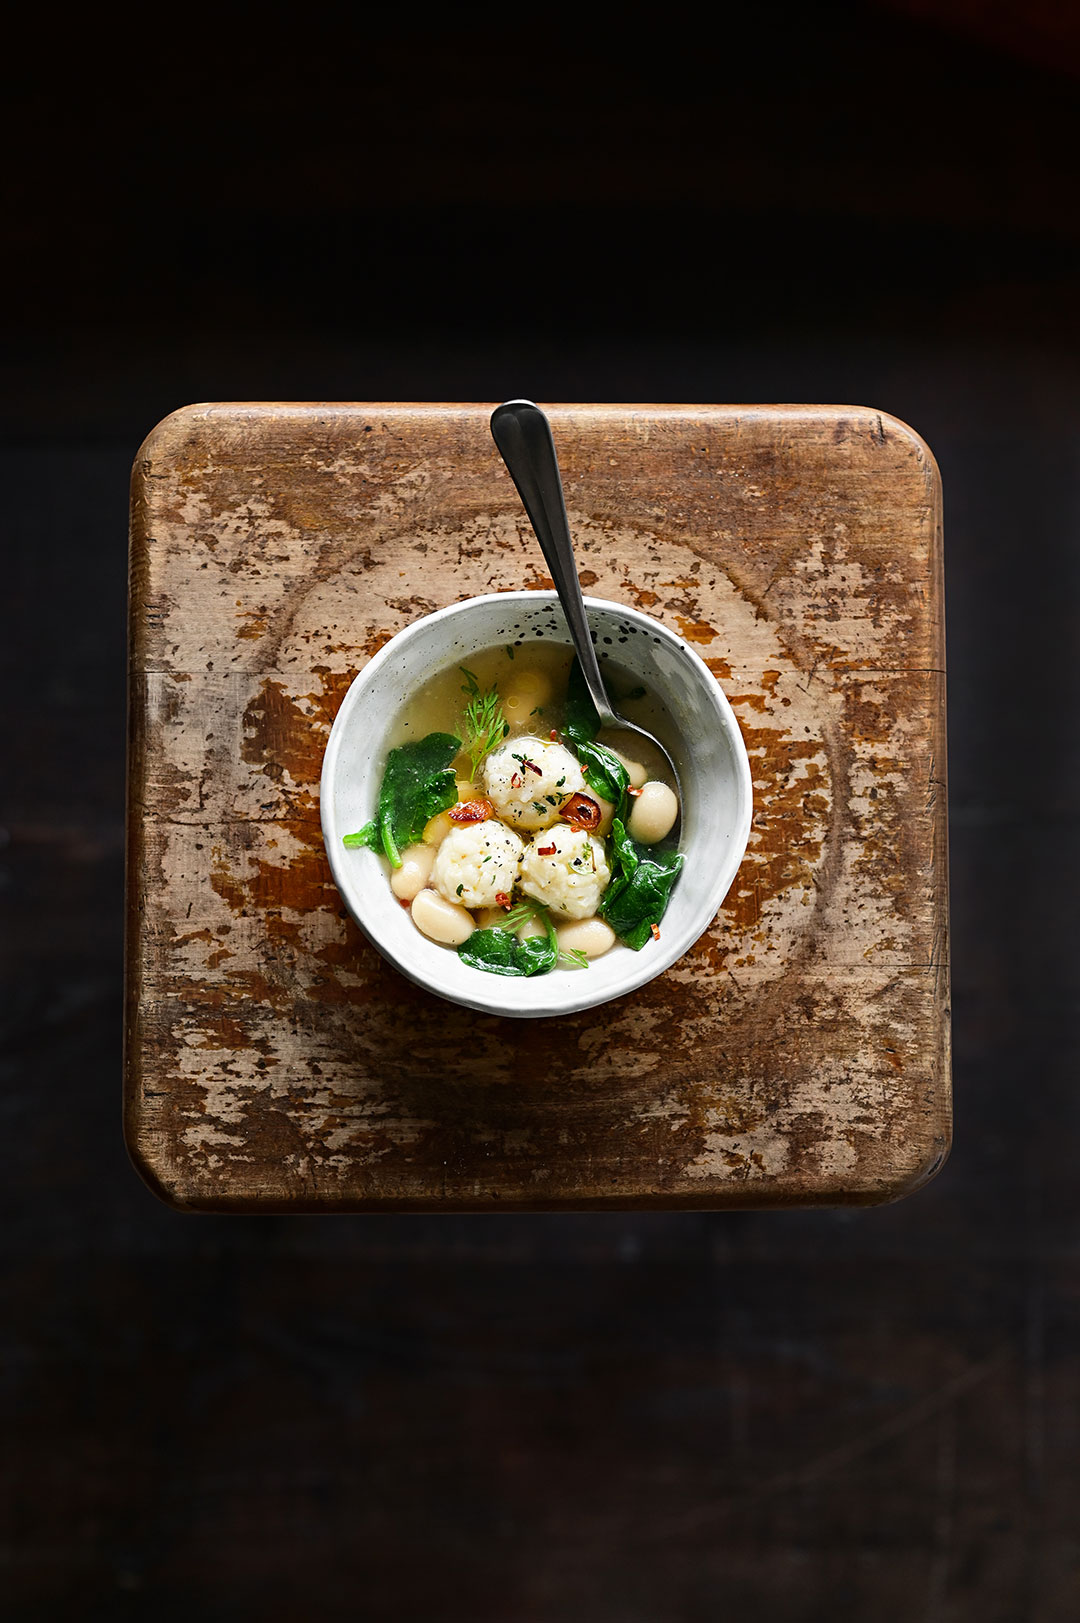 serving dumplings | Parmesan rice ball soup with spinach and butter beans